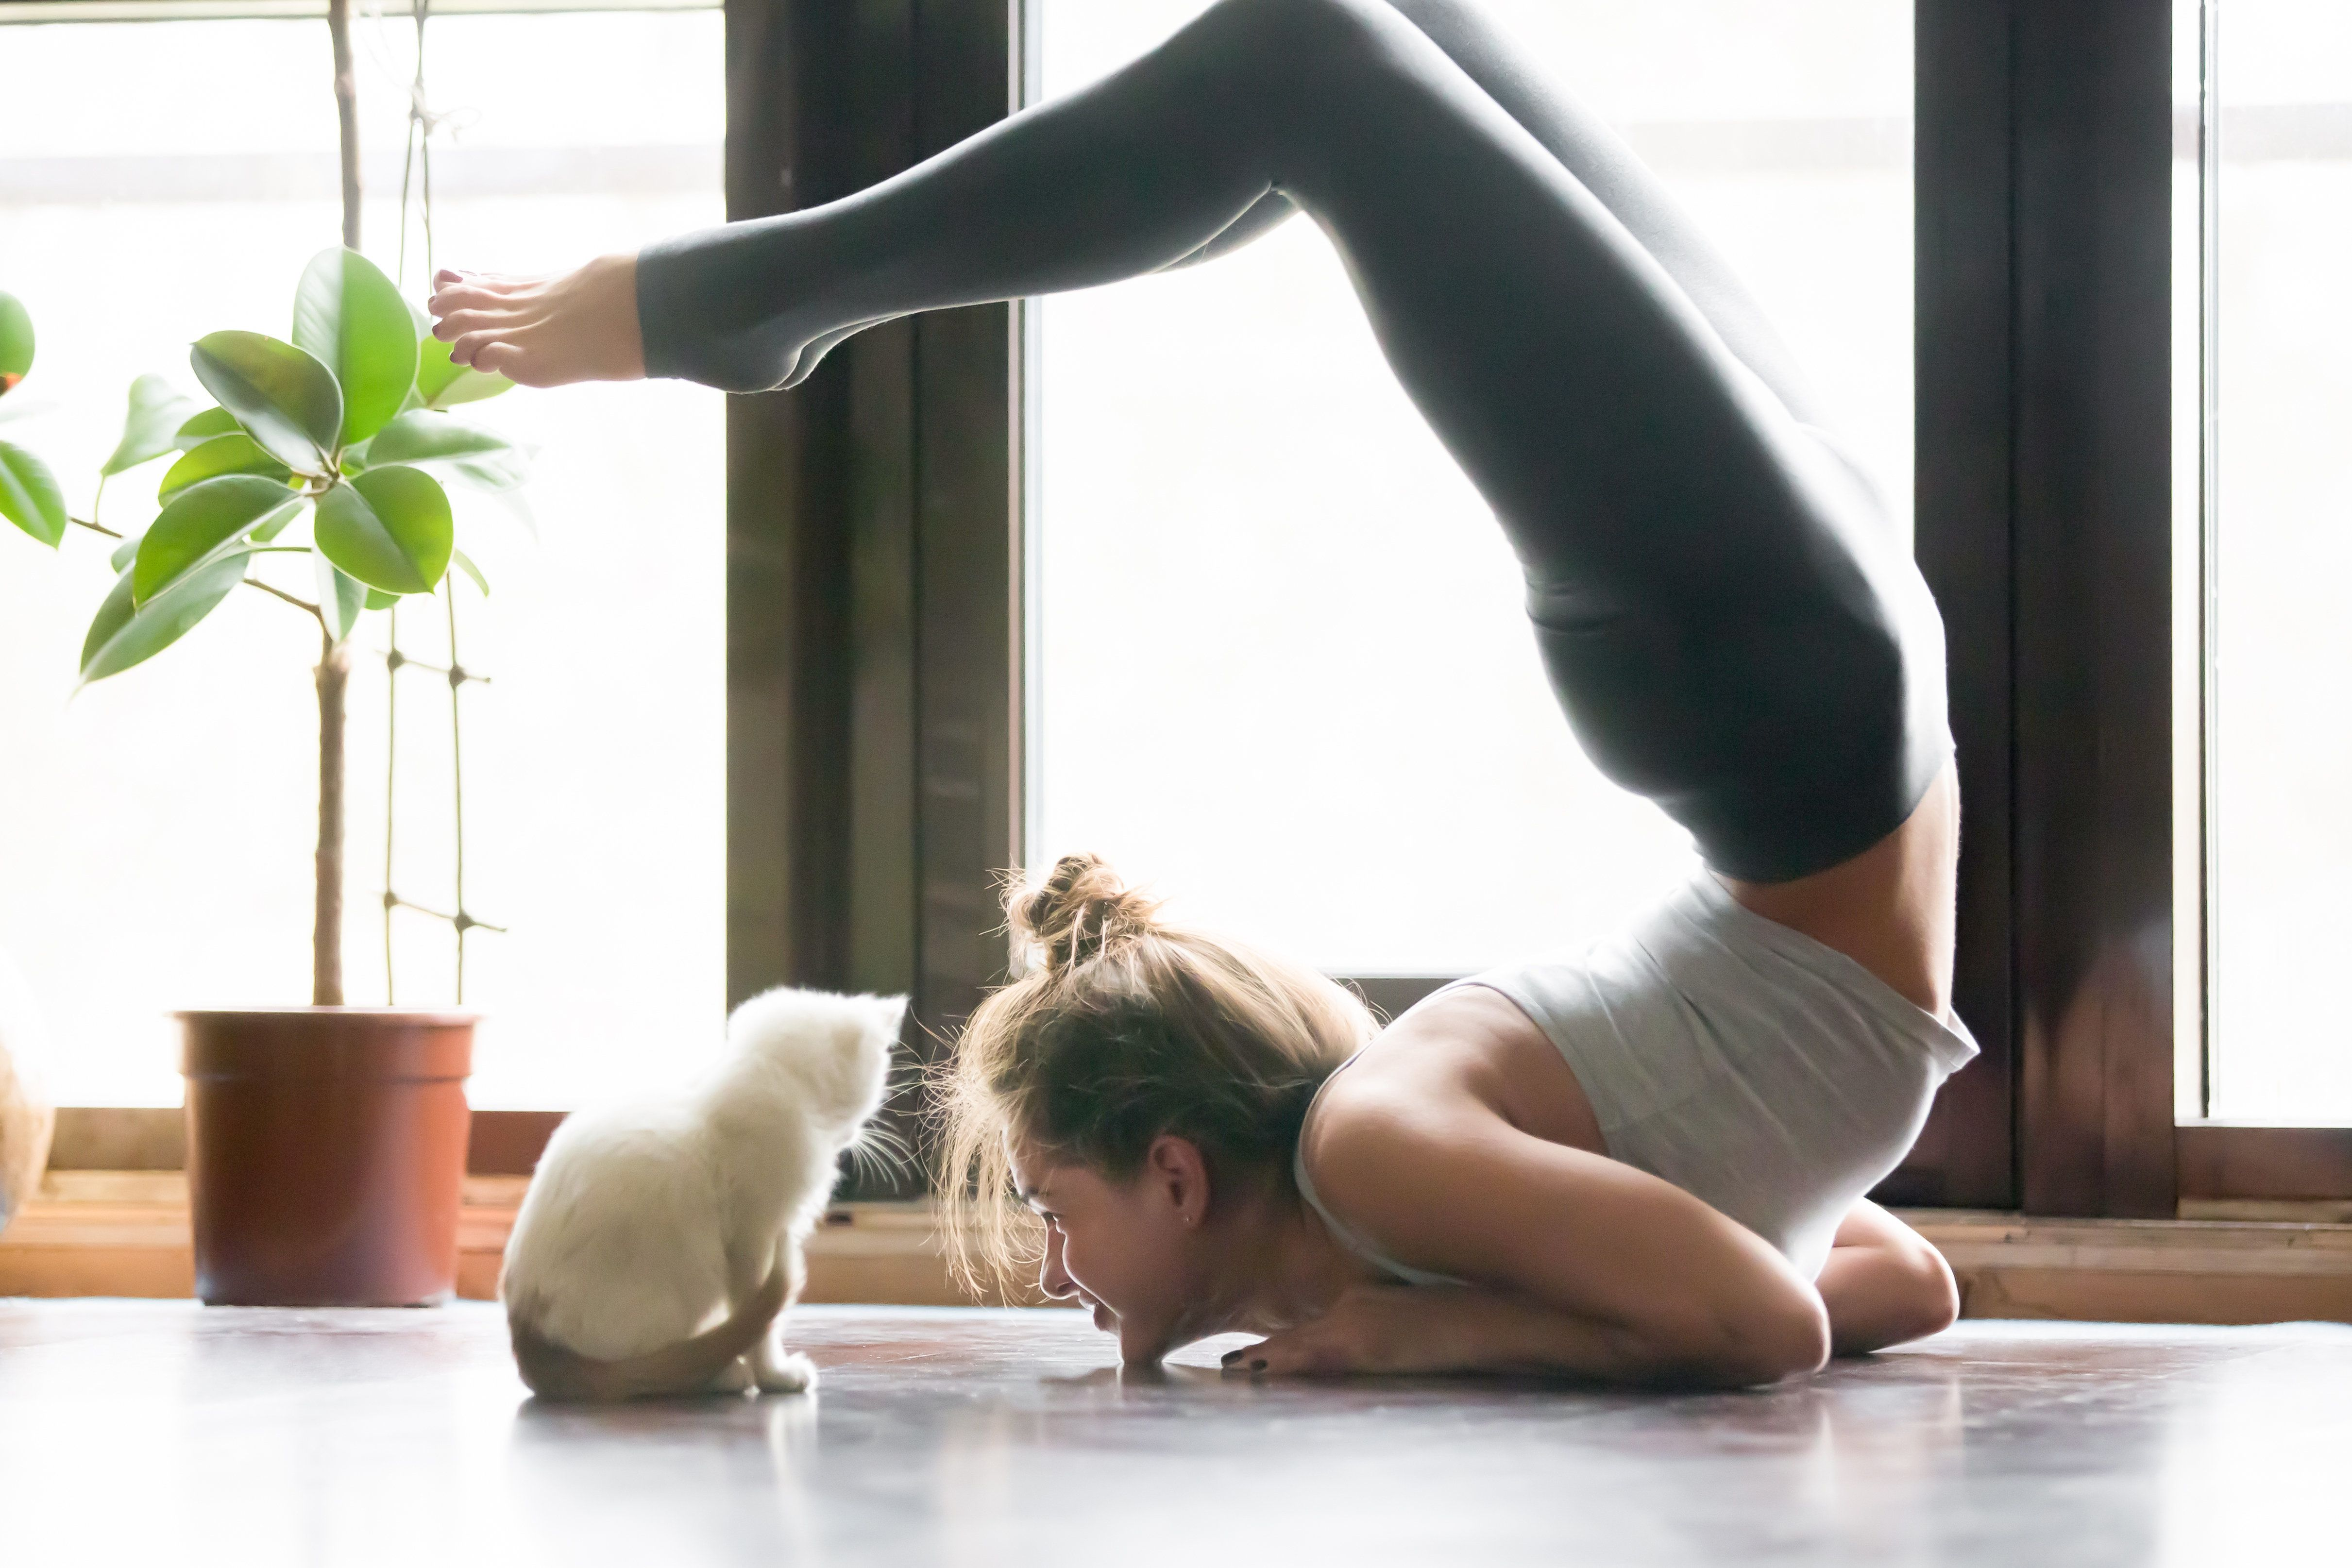 During cat yoga classes, kitties are free to roam throughout the studio while practitioners flow through poses.